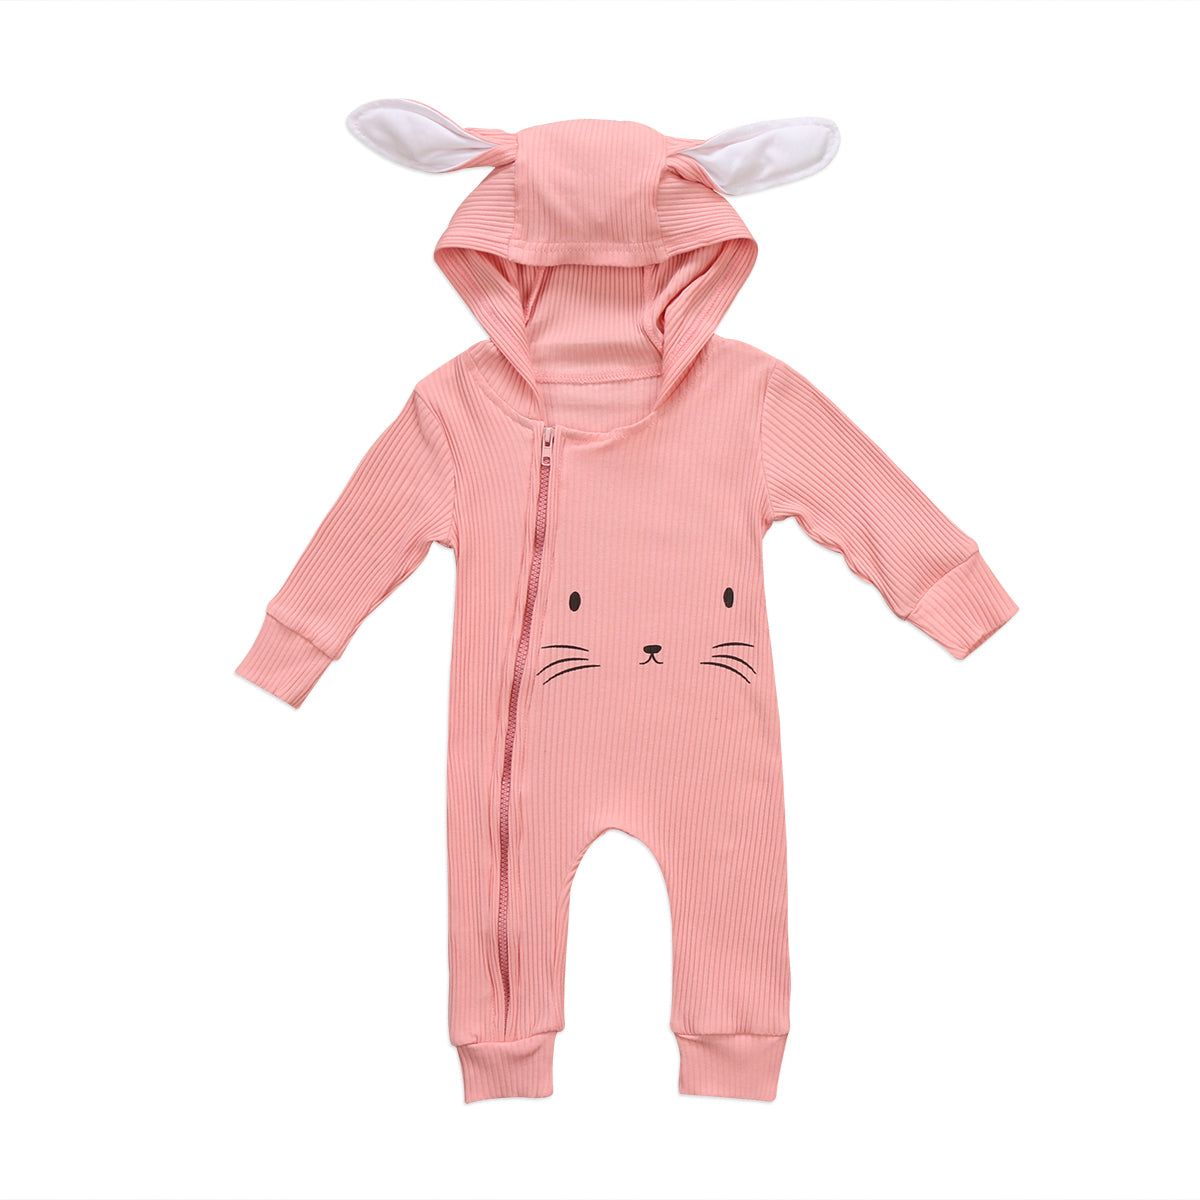 Rabbit Romper (Pink and Grey) - Darling Little One